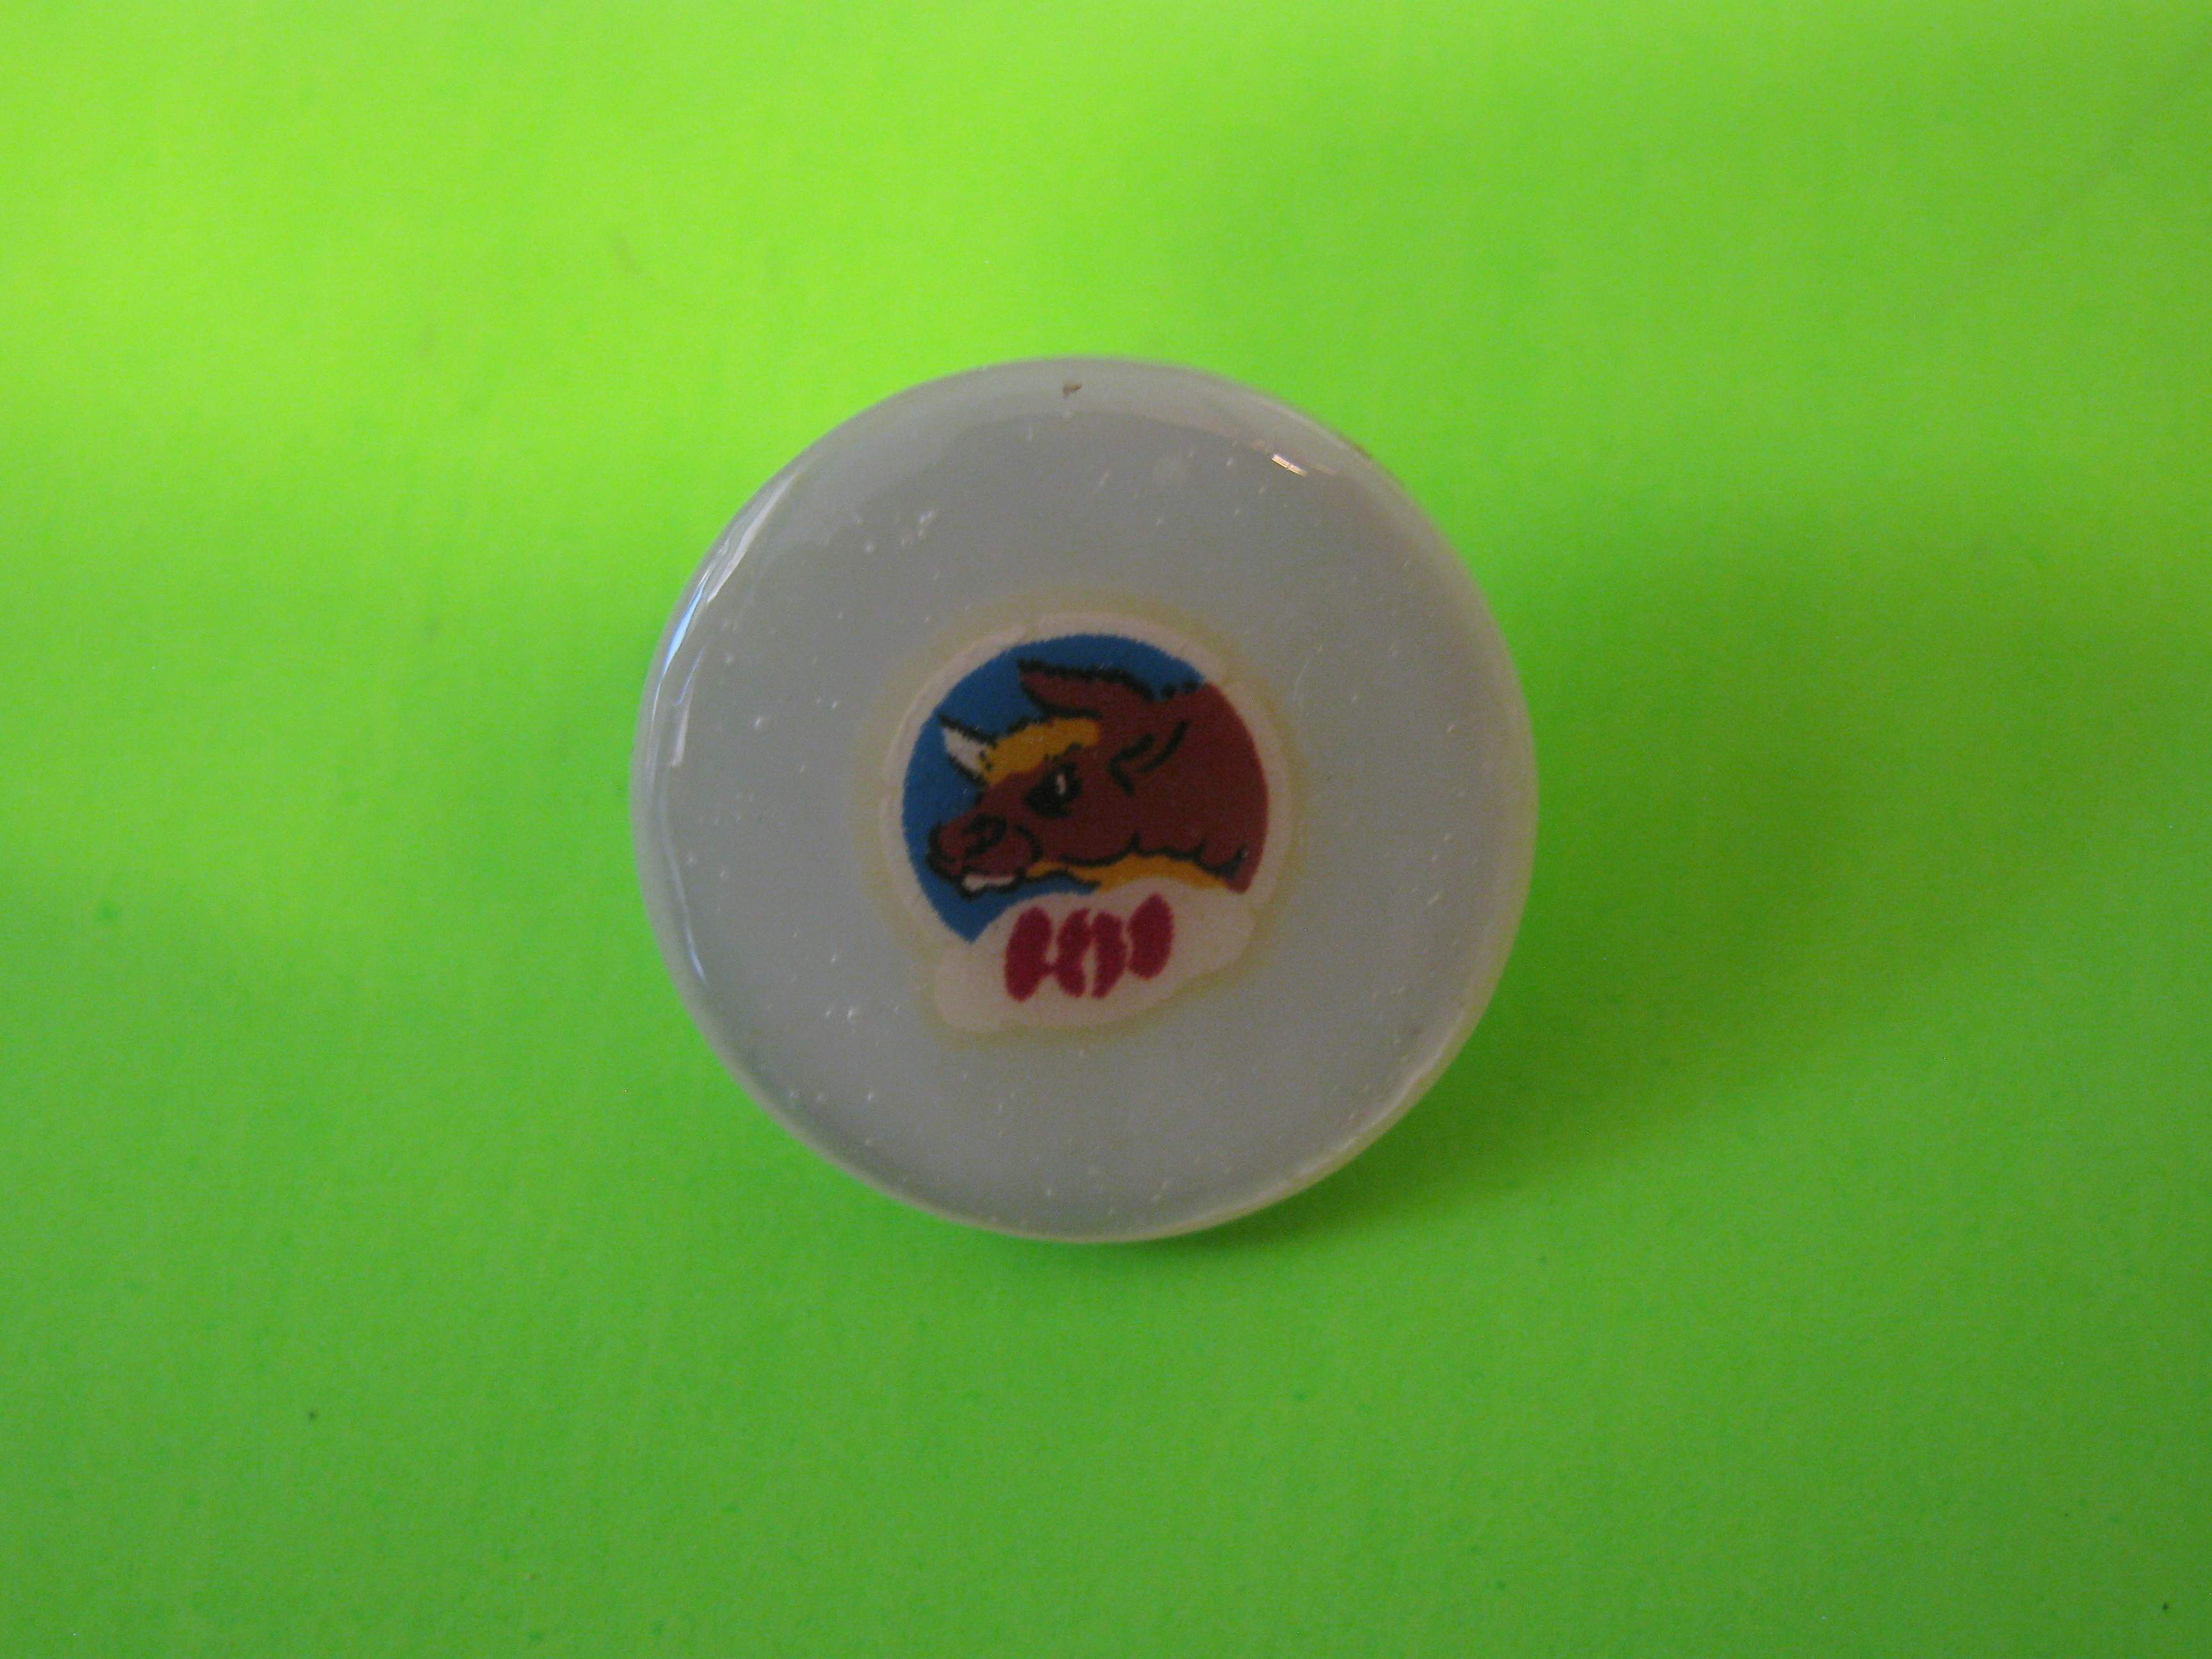 BeBo the Bull on Mother of Pearl Button with Metal Loop Shank